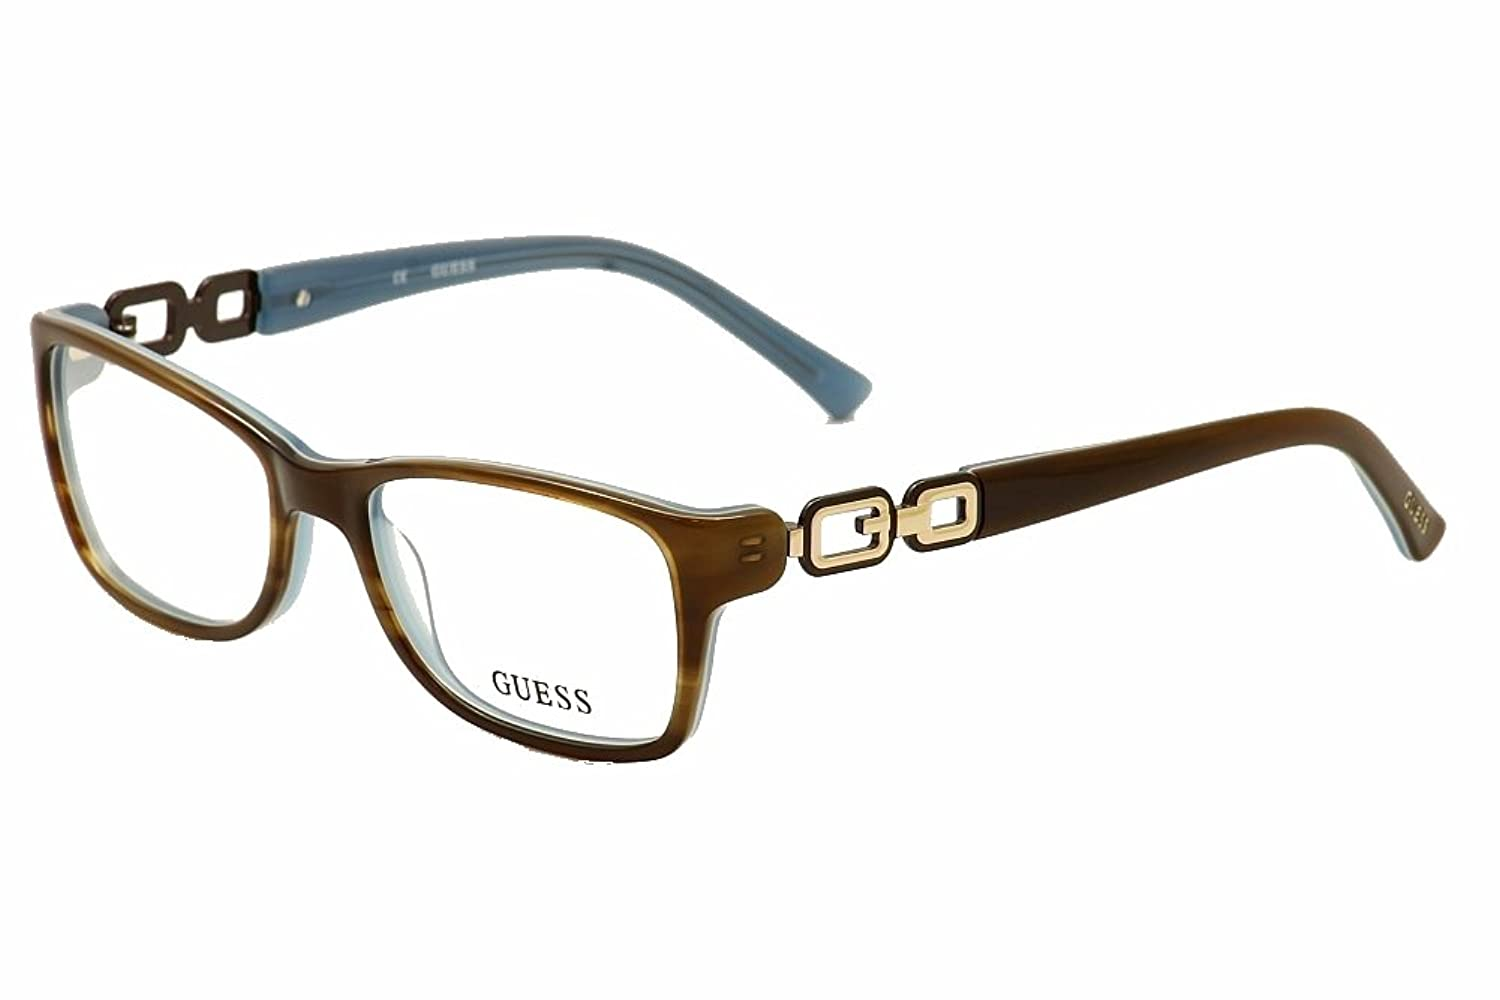 Guess Women\'s Eyeglasses GUA2406 2406 BRNBL Brown/Blue Full Rim ...